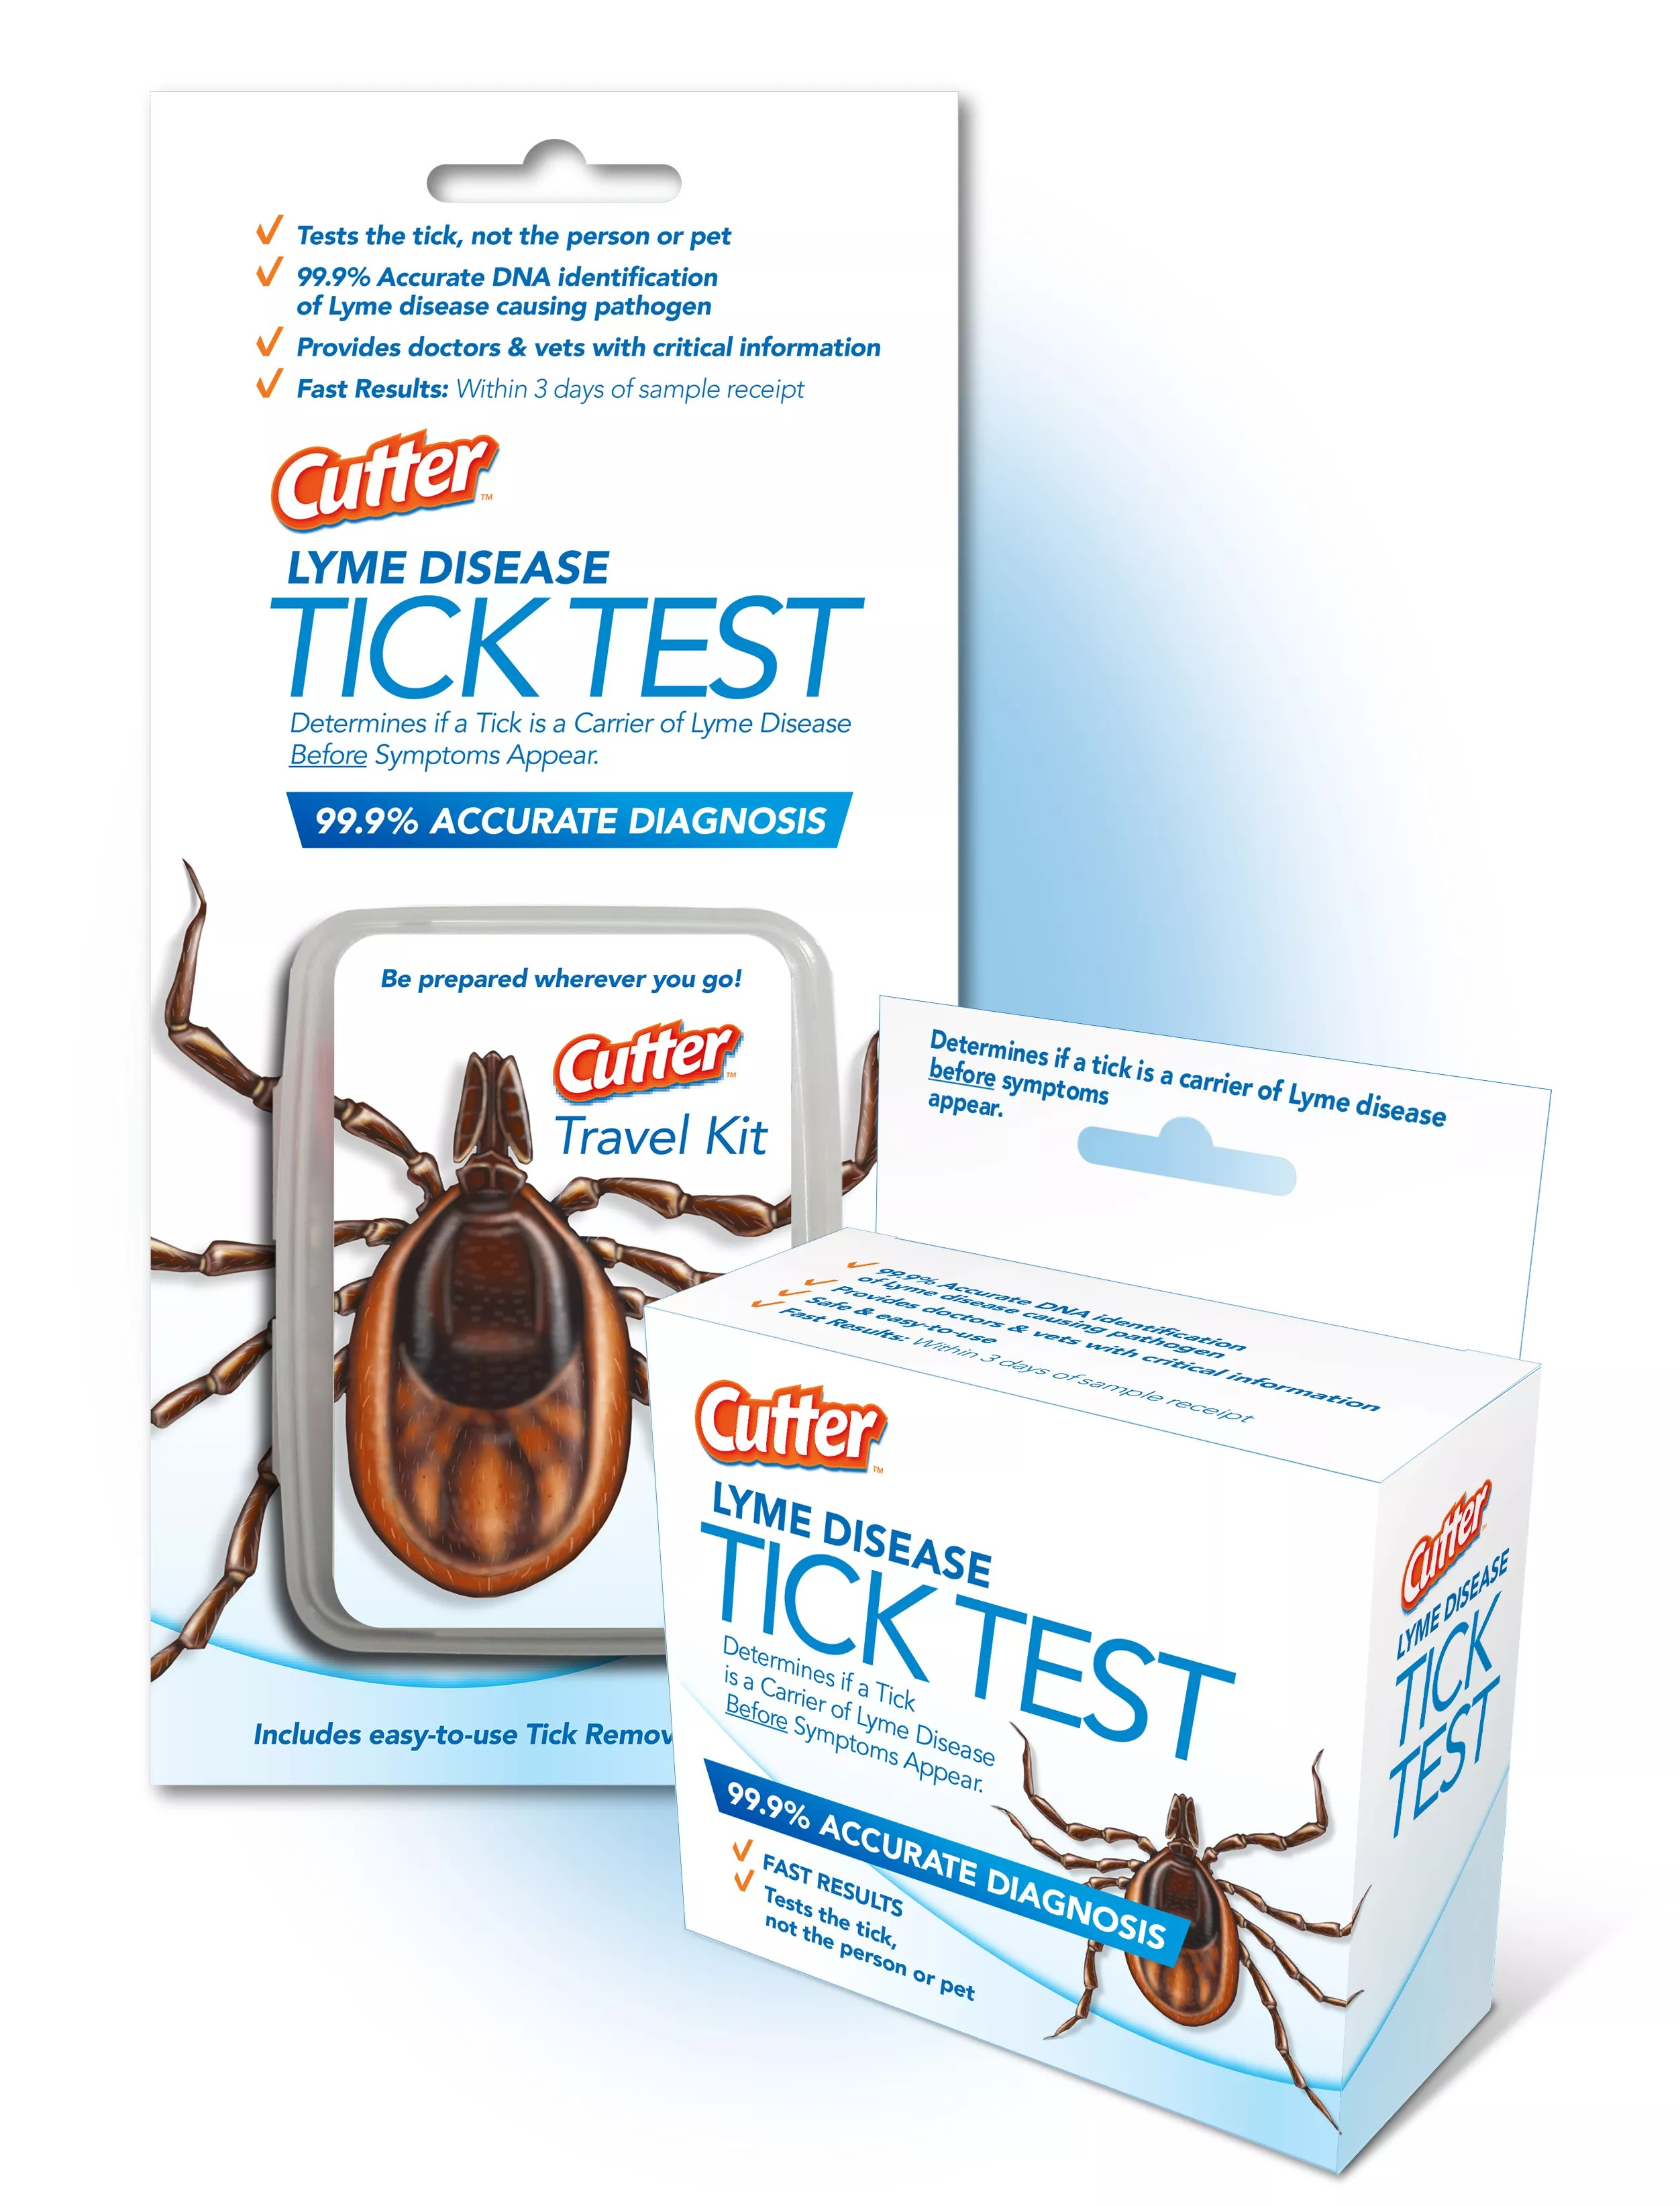 EPA Enterprises launches Cutter™ Lyme Disease Tick Test that provides quick, inexpensive and 99.9% accurate DNA test result.